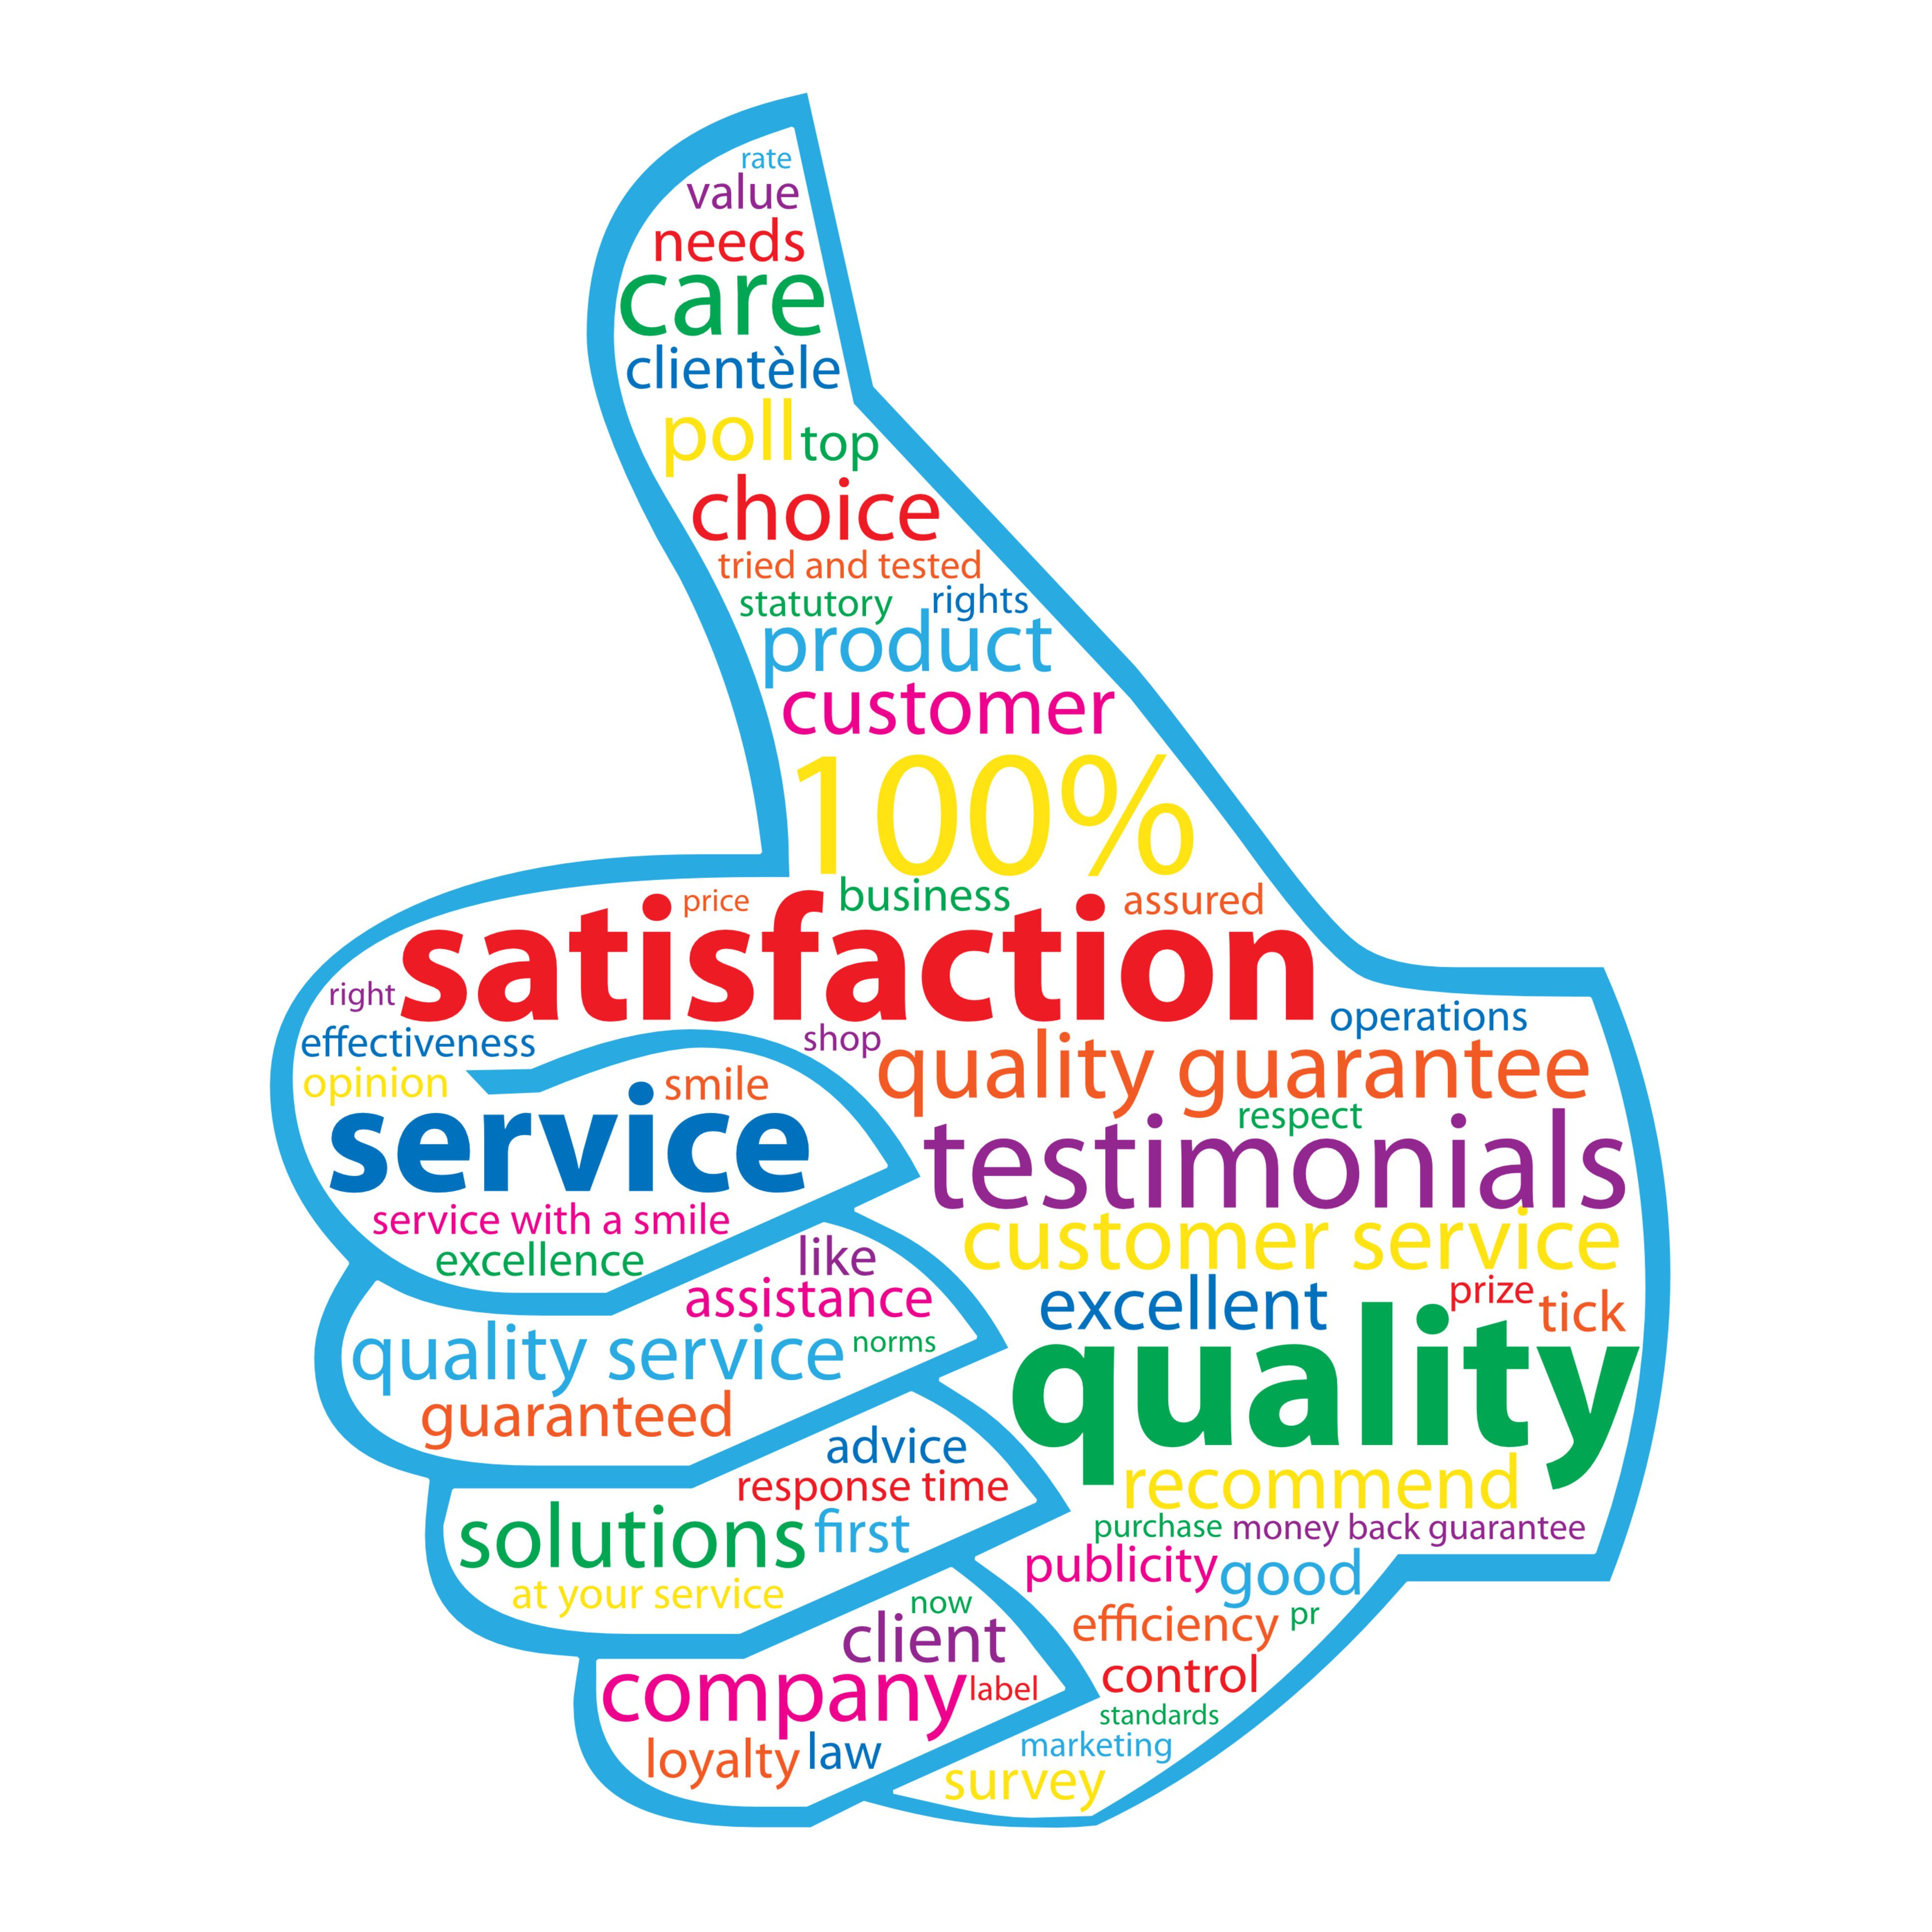 creating-value-and-driving-customer-satisfaction